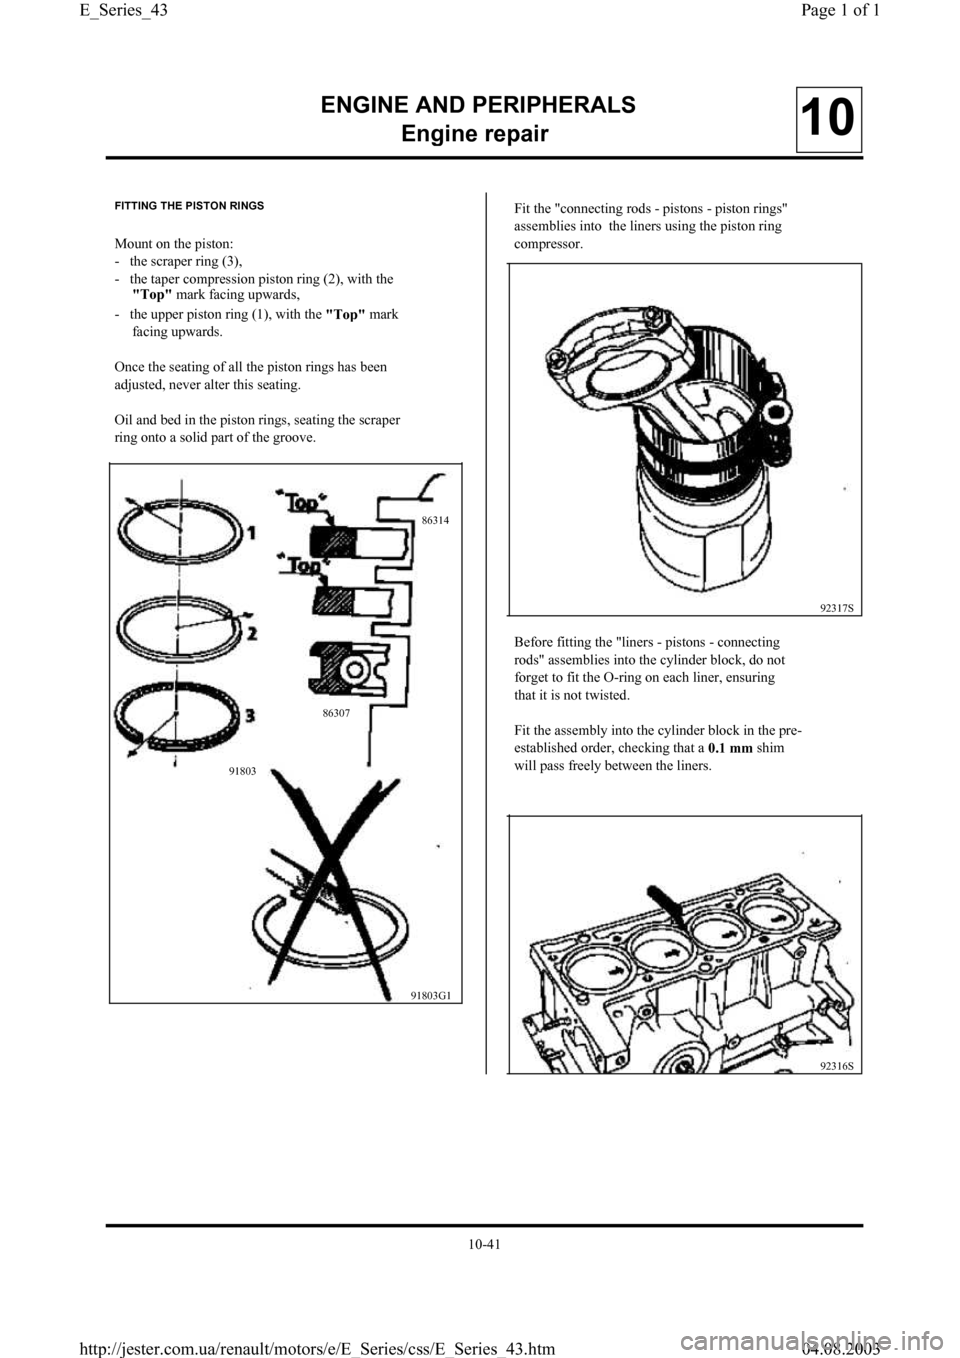 RENAULT CLIO 1997 X57 / 1.G Petrol Engines Workshop Manual, Page 43